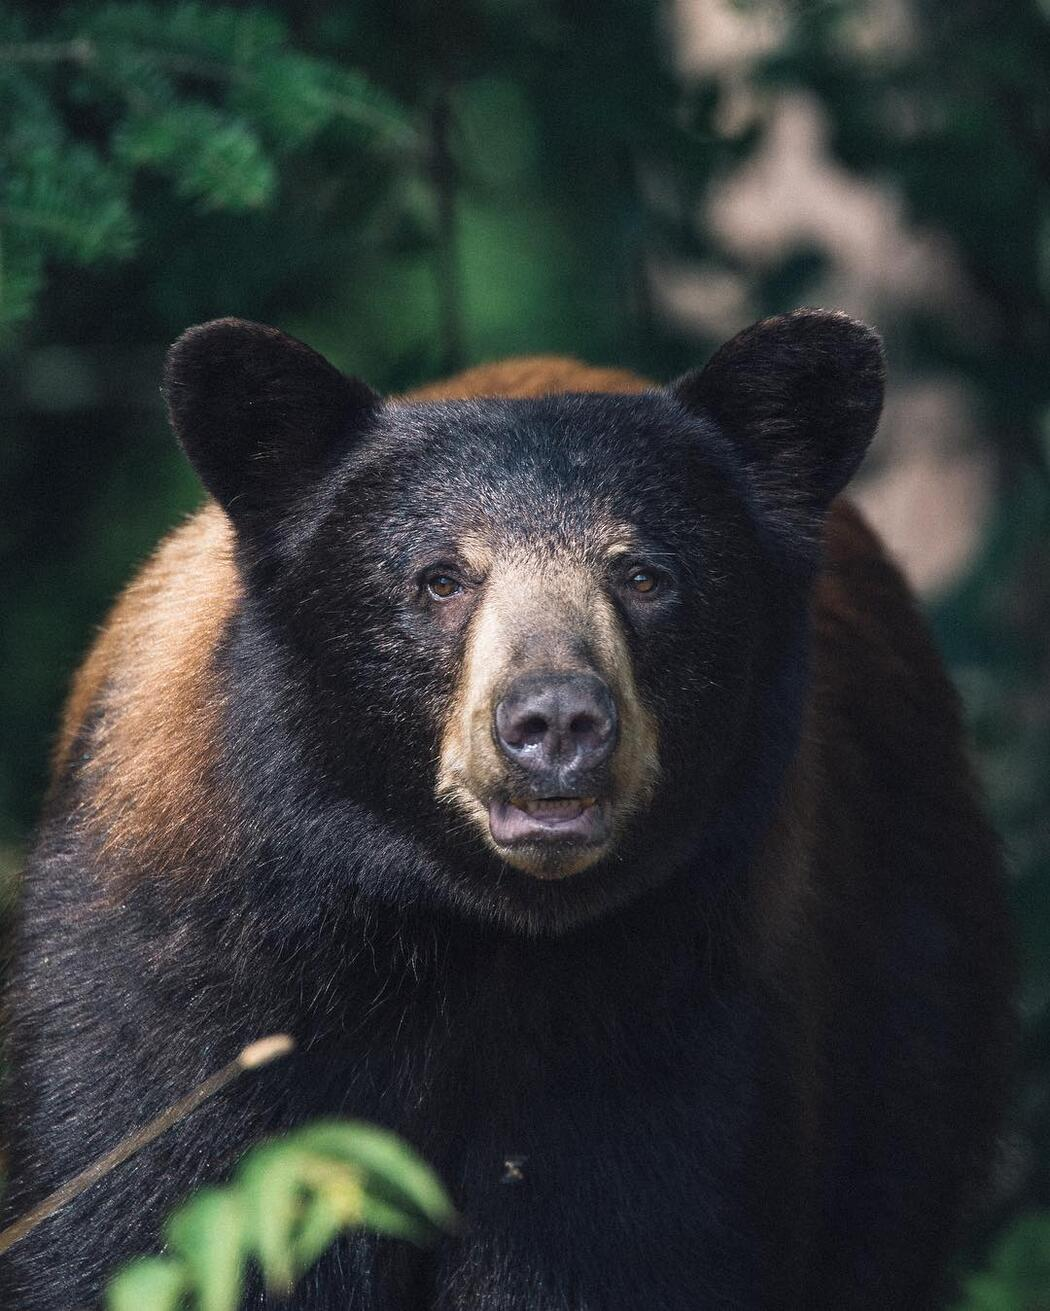 Front view of a black bear.